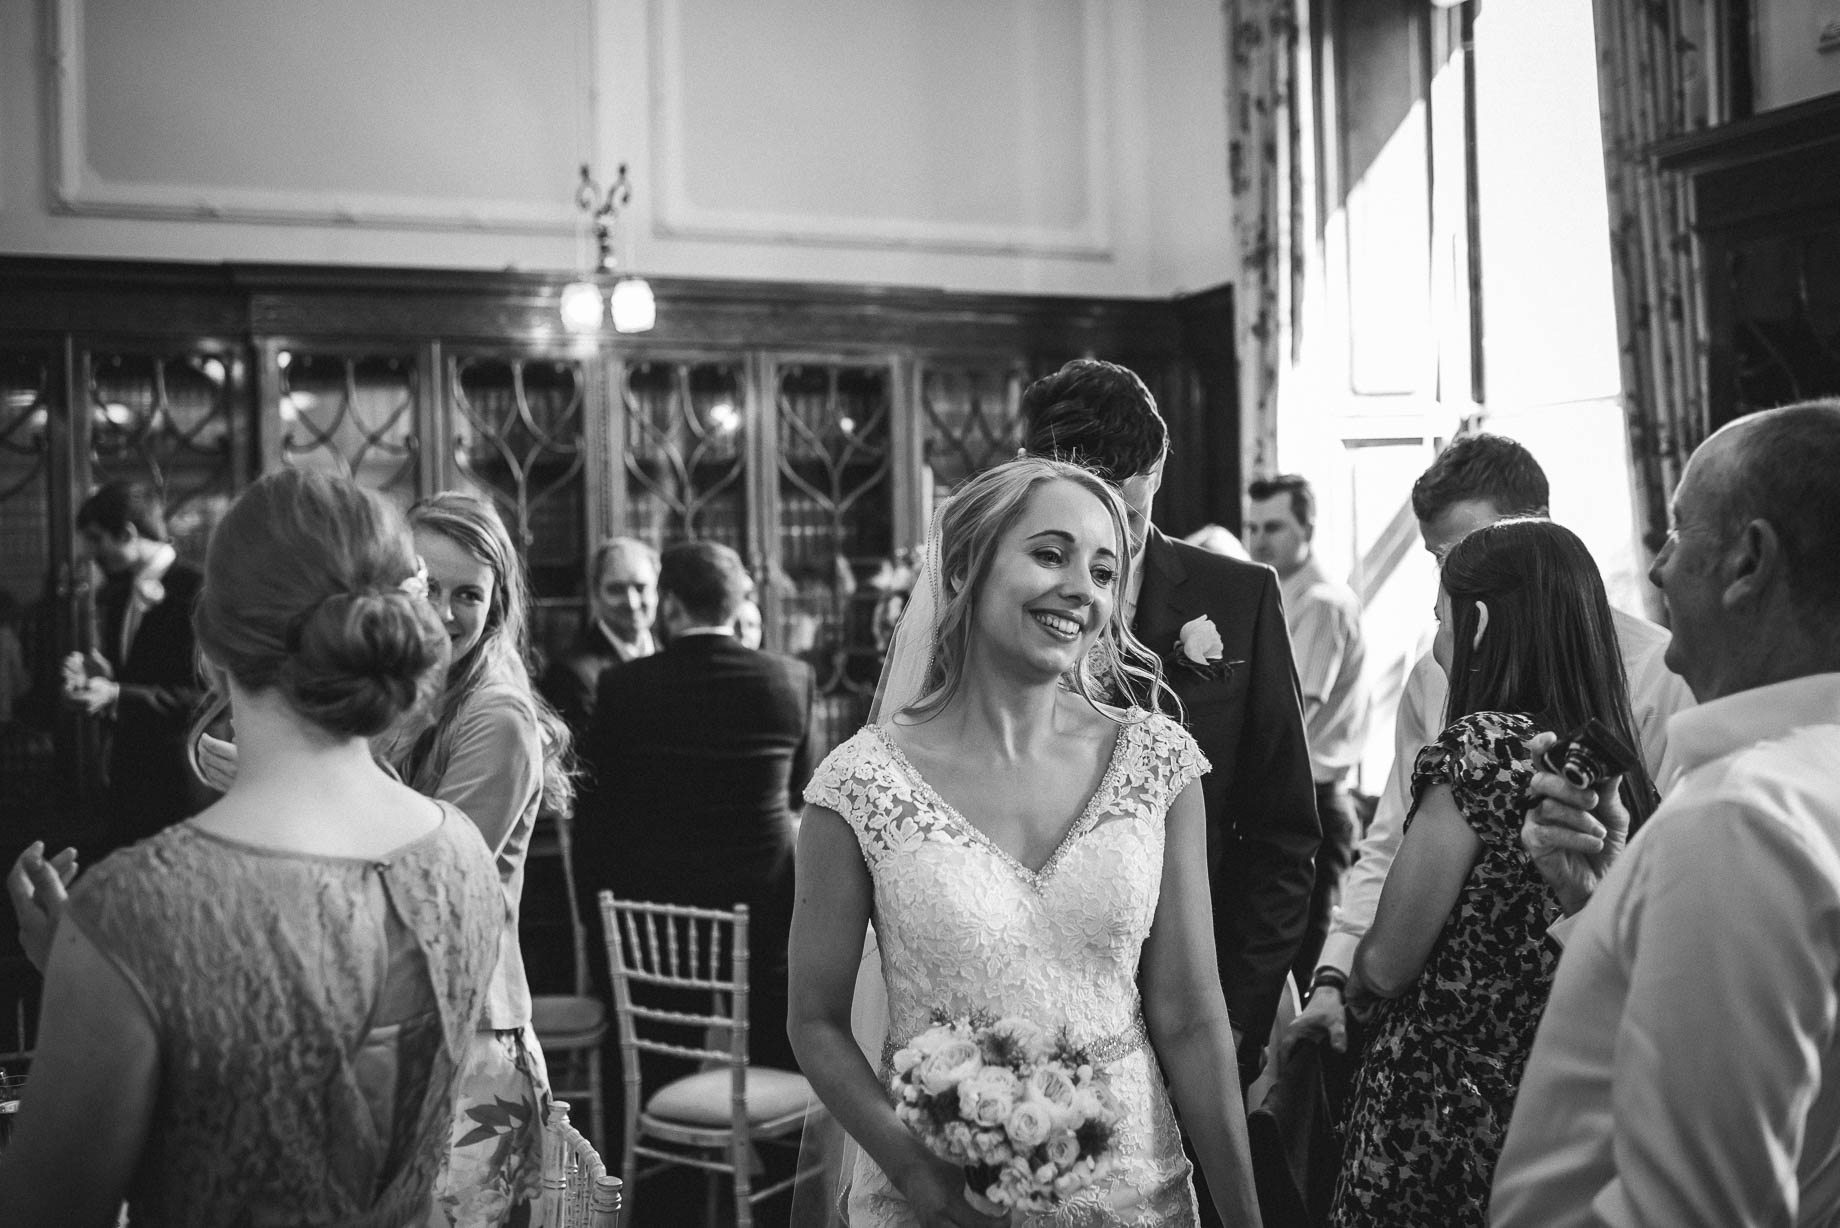 Hampshire wedding photography by Guy Collier - Emily and Tom (102 of 164)